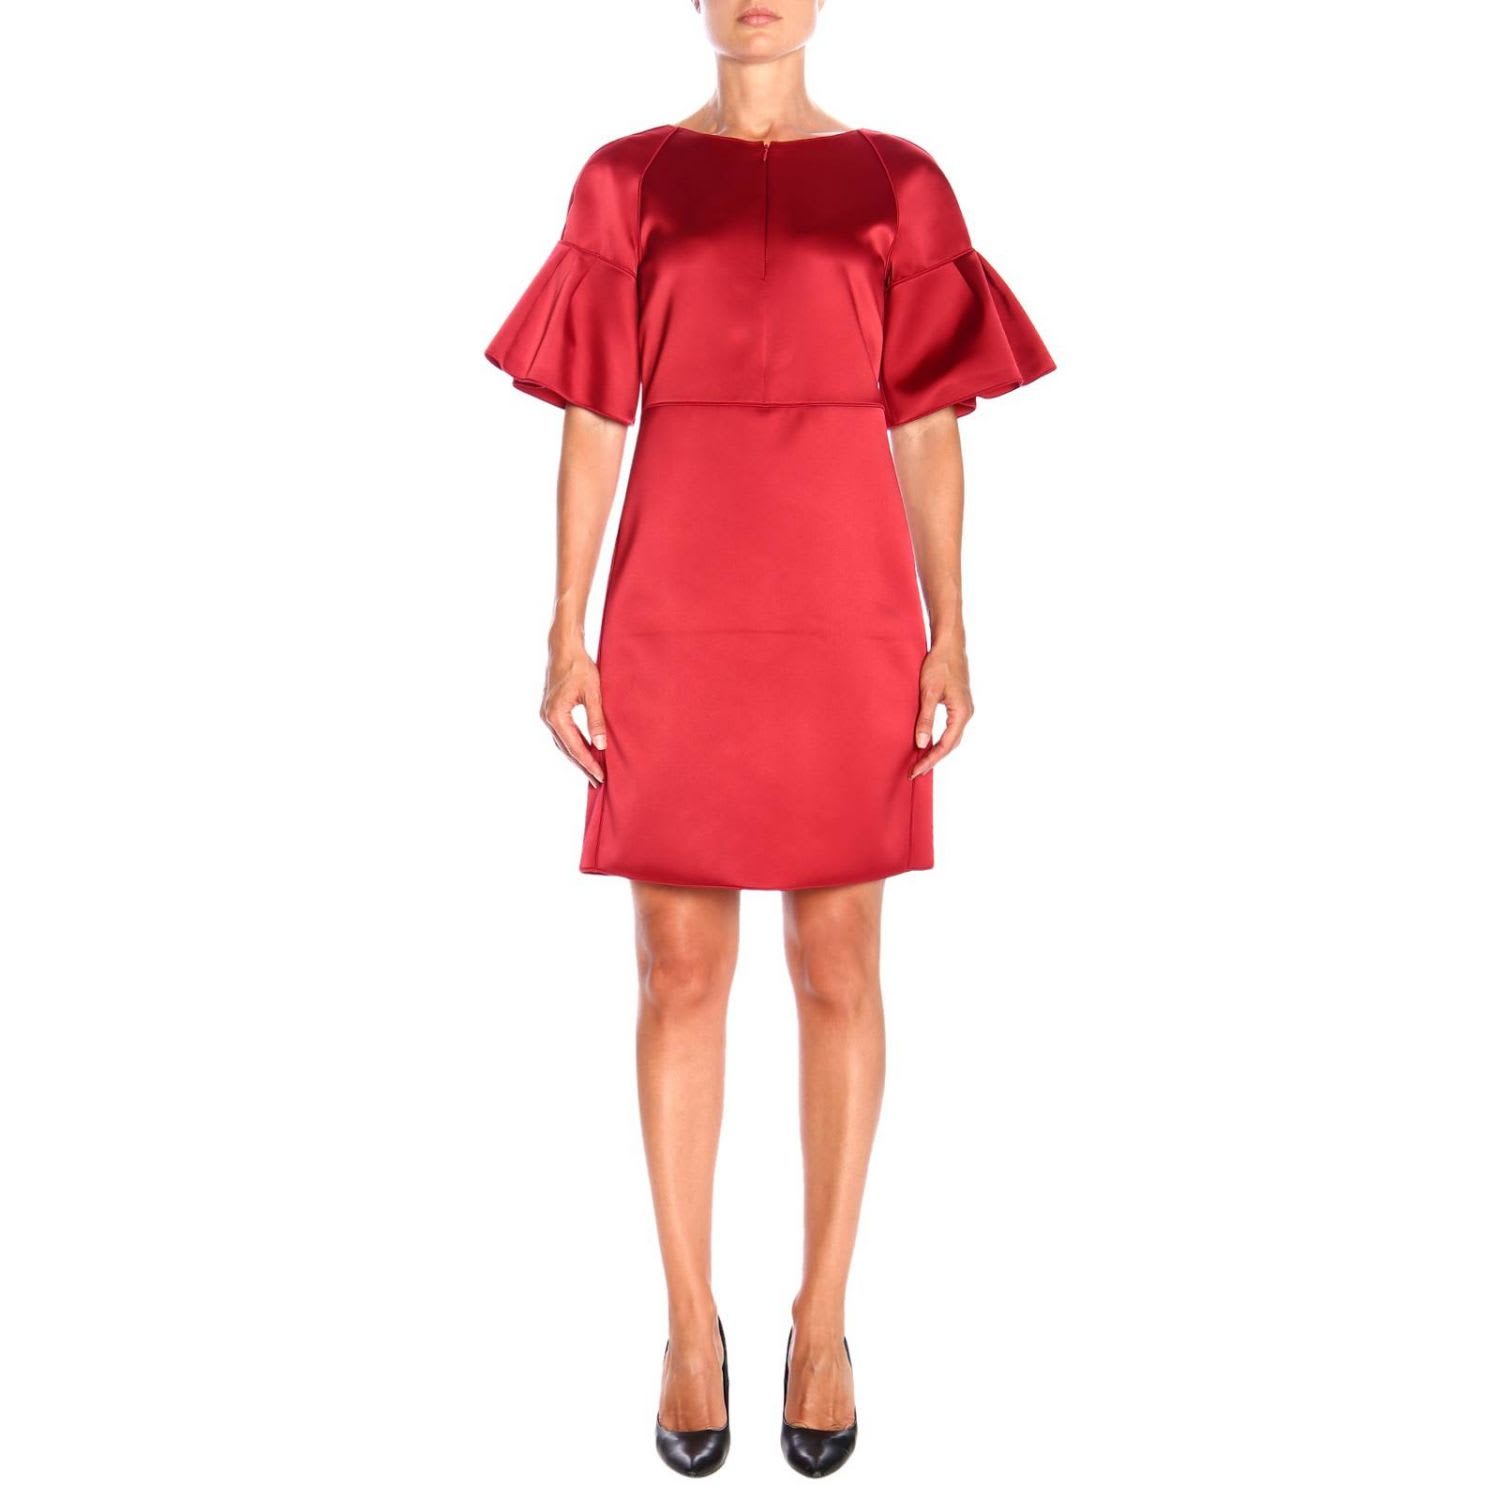 Emporio Armani Dress Emporio Armani Dress In Satin With Ruffled Sleeves